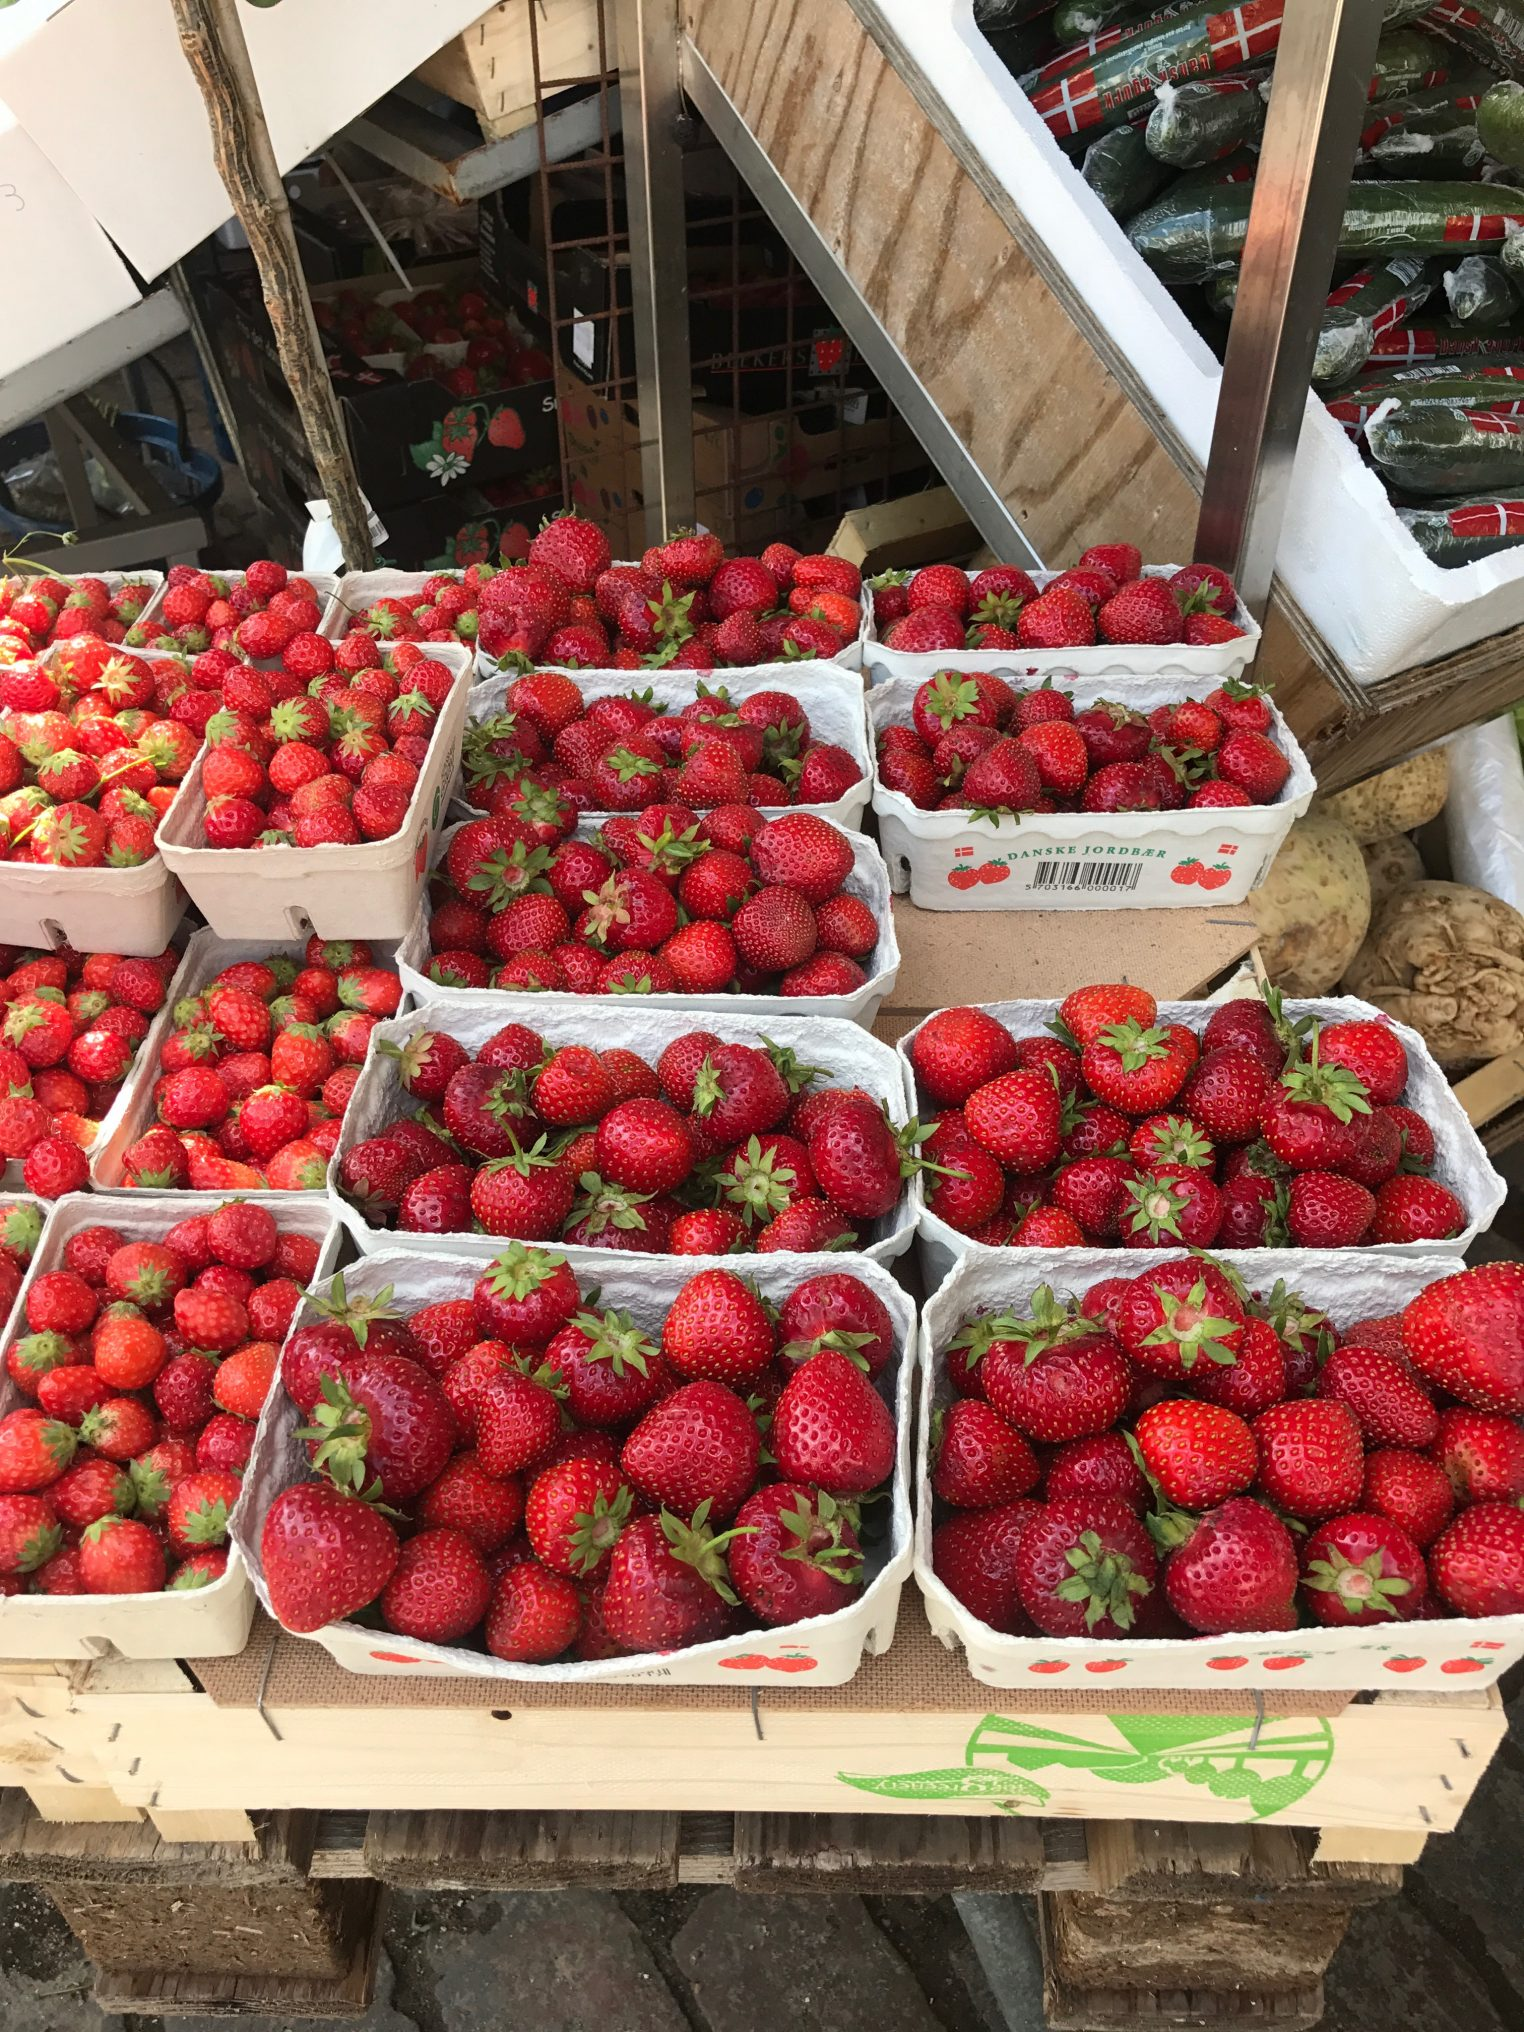 The strawberries in Denmark are some of the best I've ever had. I made it my personal mission to eat a basket daily.